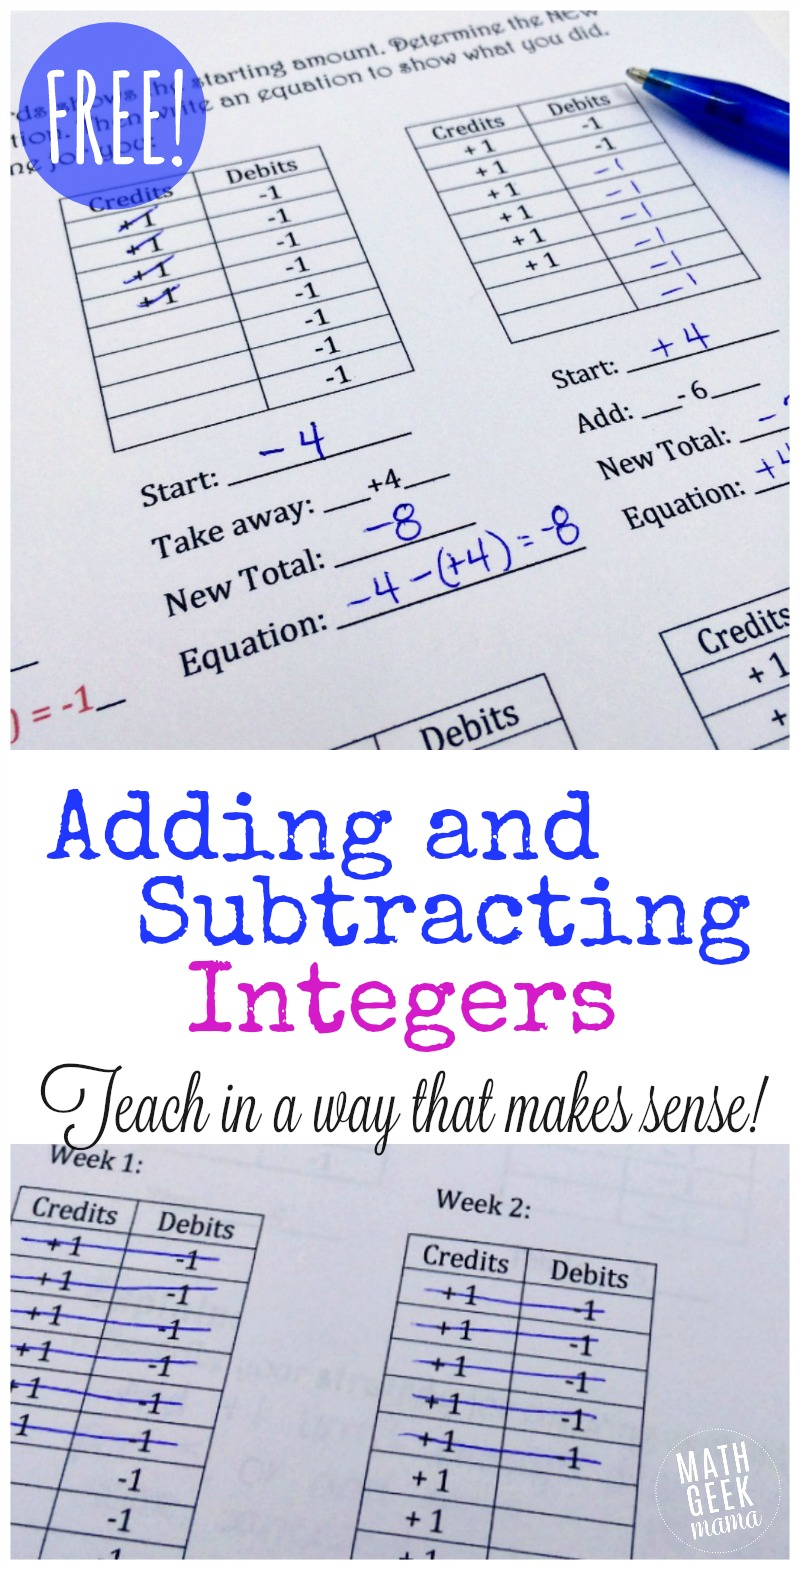 hight resolution of FREE Adding and Subtracting Integers Lesson